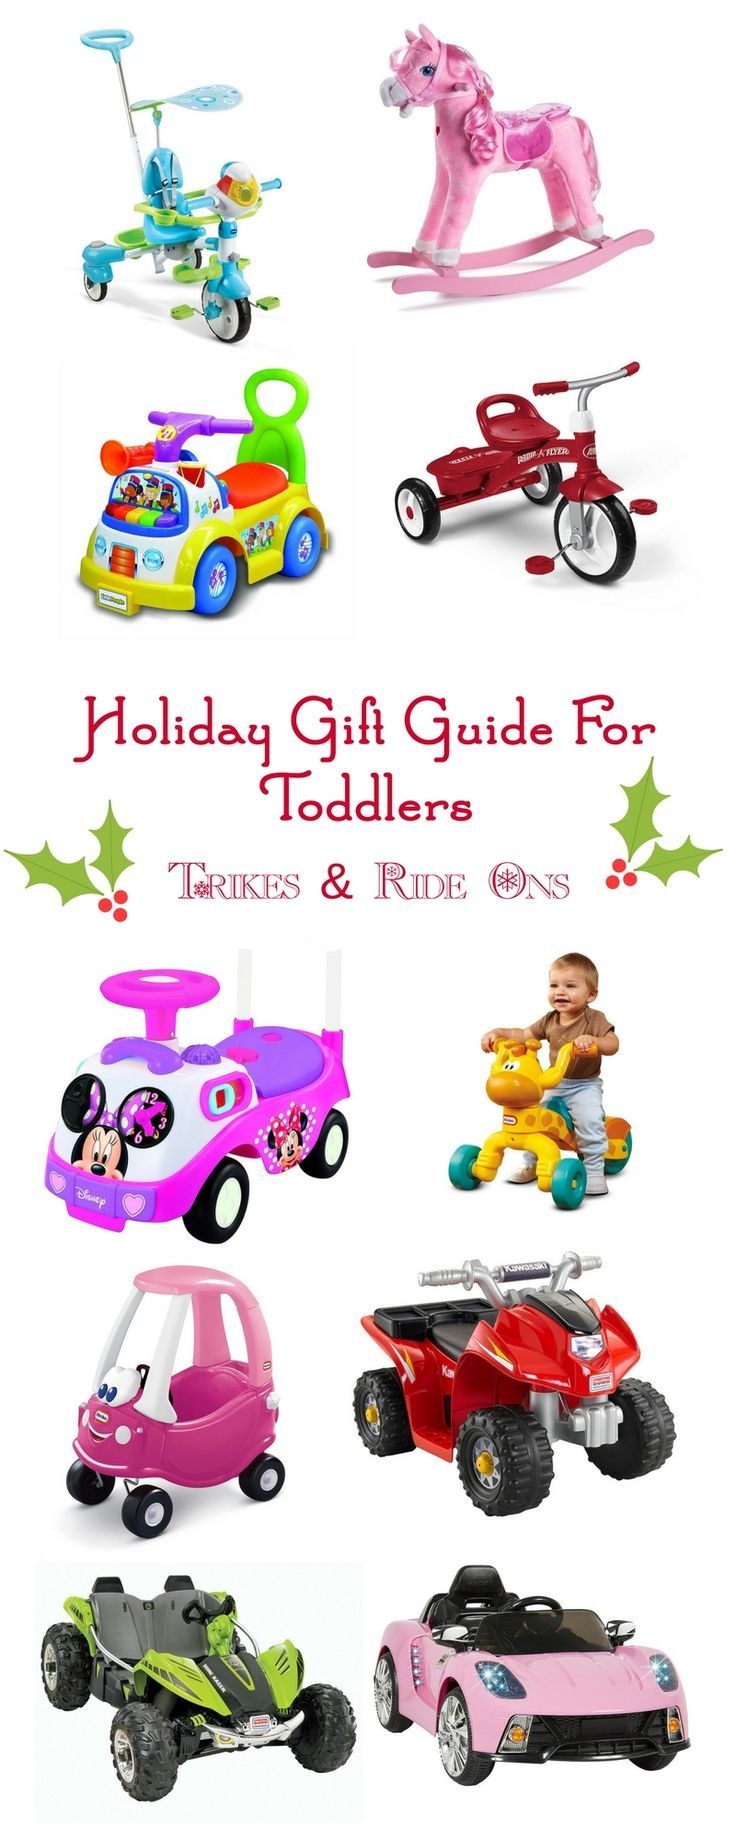 This website is currently unavailable. Toddler gifts